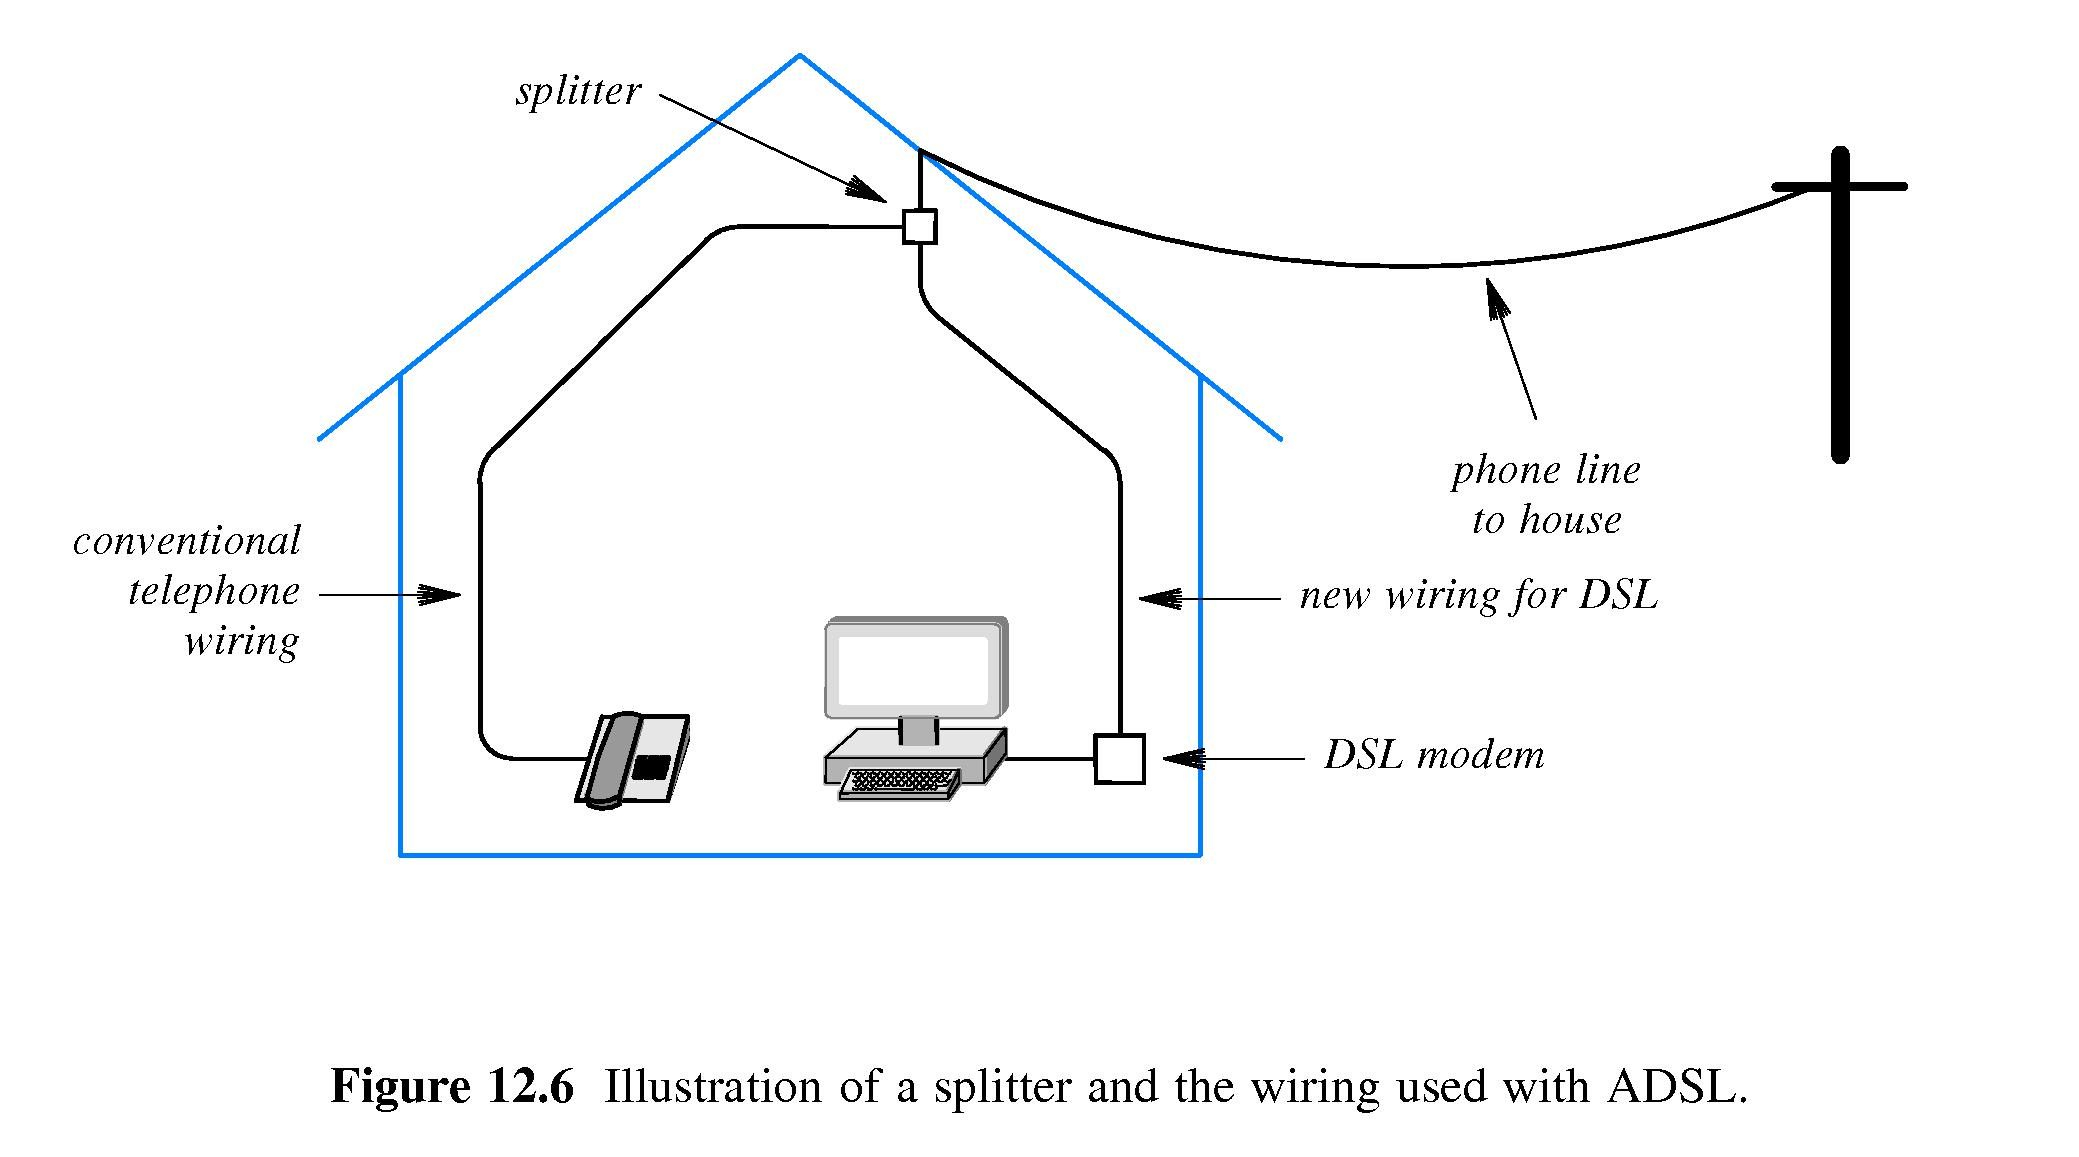 Chapter 12 Access And Interconnection Technologies Dsl Phone Wiring Basics A Splitter On The Incoming Line But Uses Micro Filters Inline With Adsl Modem Phones Fax Machines Glite Is Cheaper May Run Slower